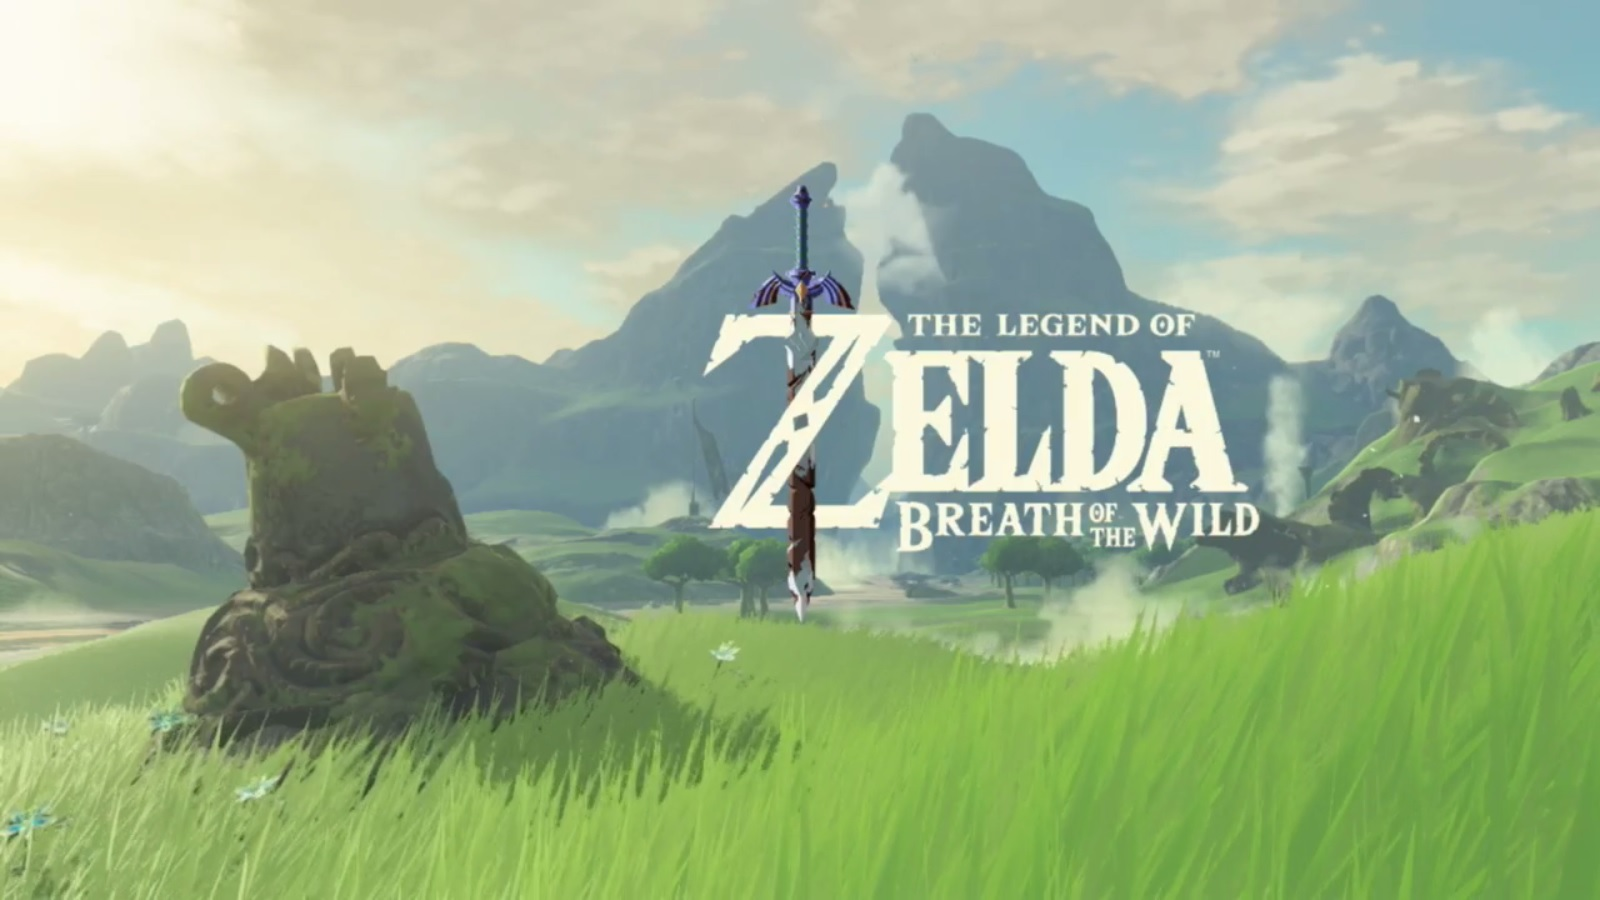 A breath of fresh air: A week with 'The Legend of Zelda: Breath of the Wild'